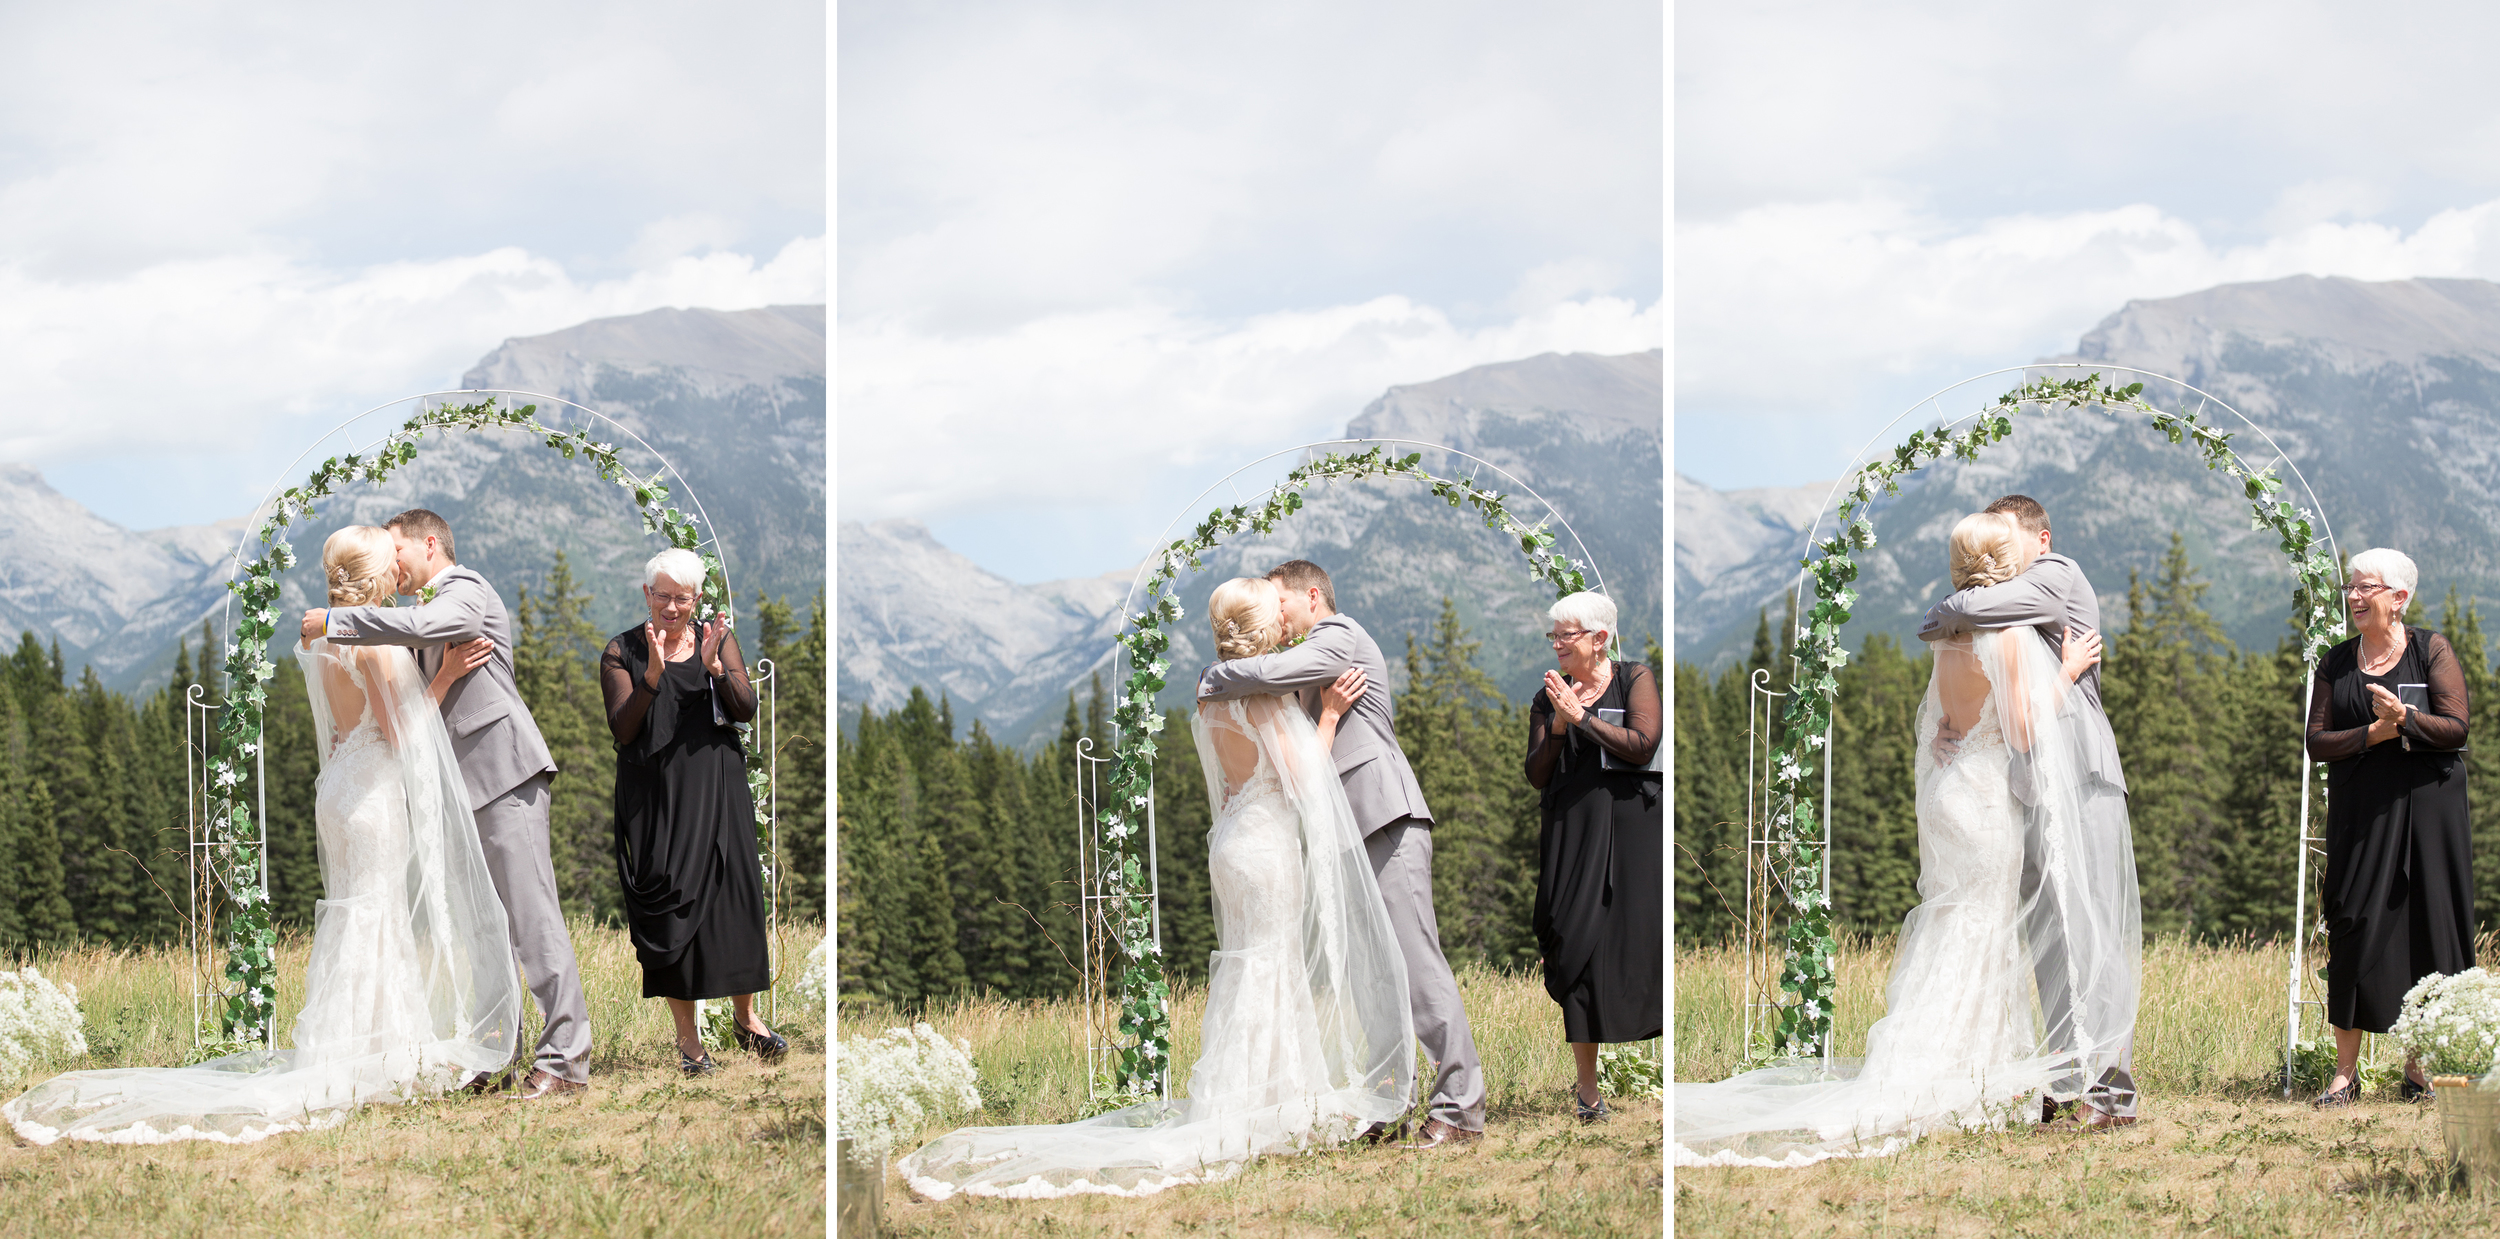 Wedding day first kiss in Canmore, Alberta in the Rocky Mountains